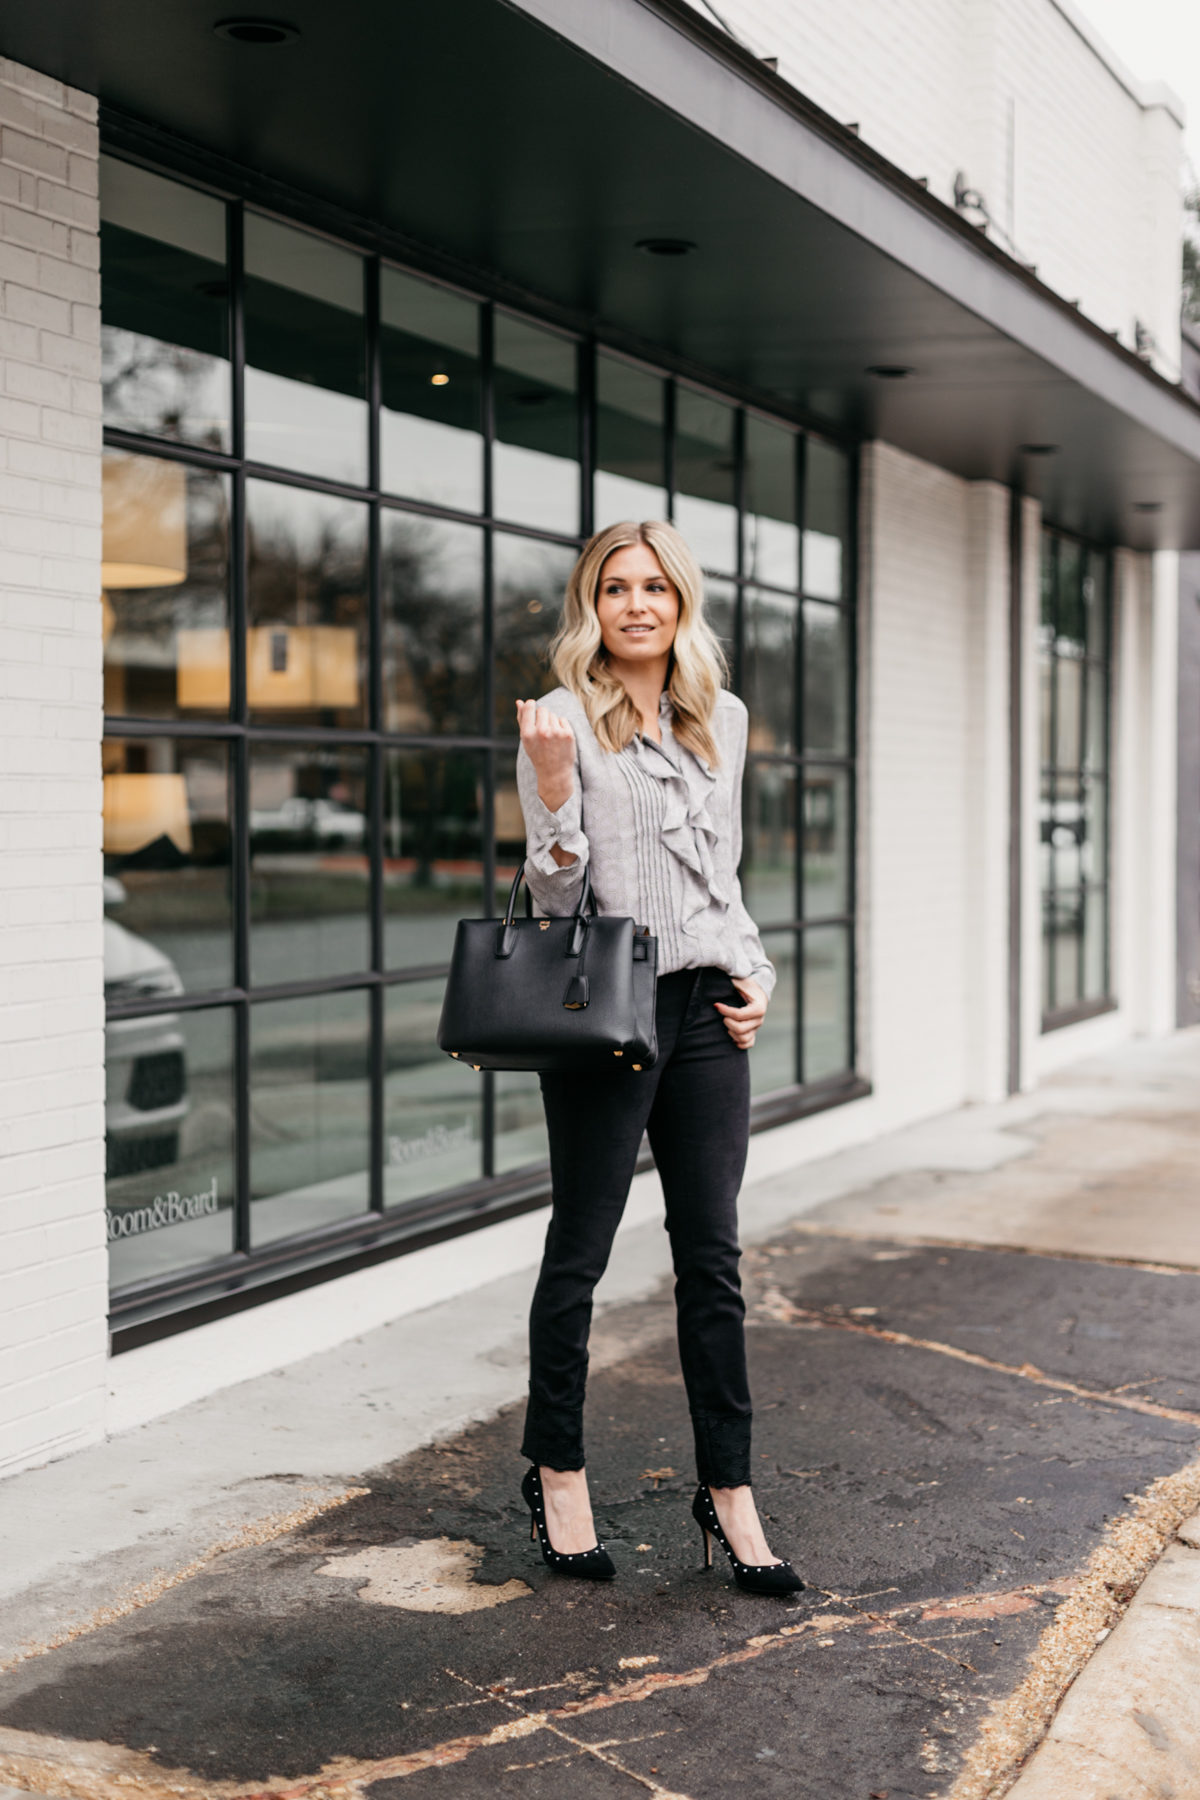 LOOKING AHEAD TO 2019 - One Small Blonde